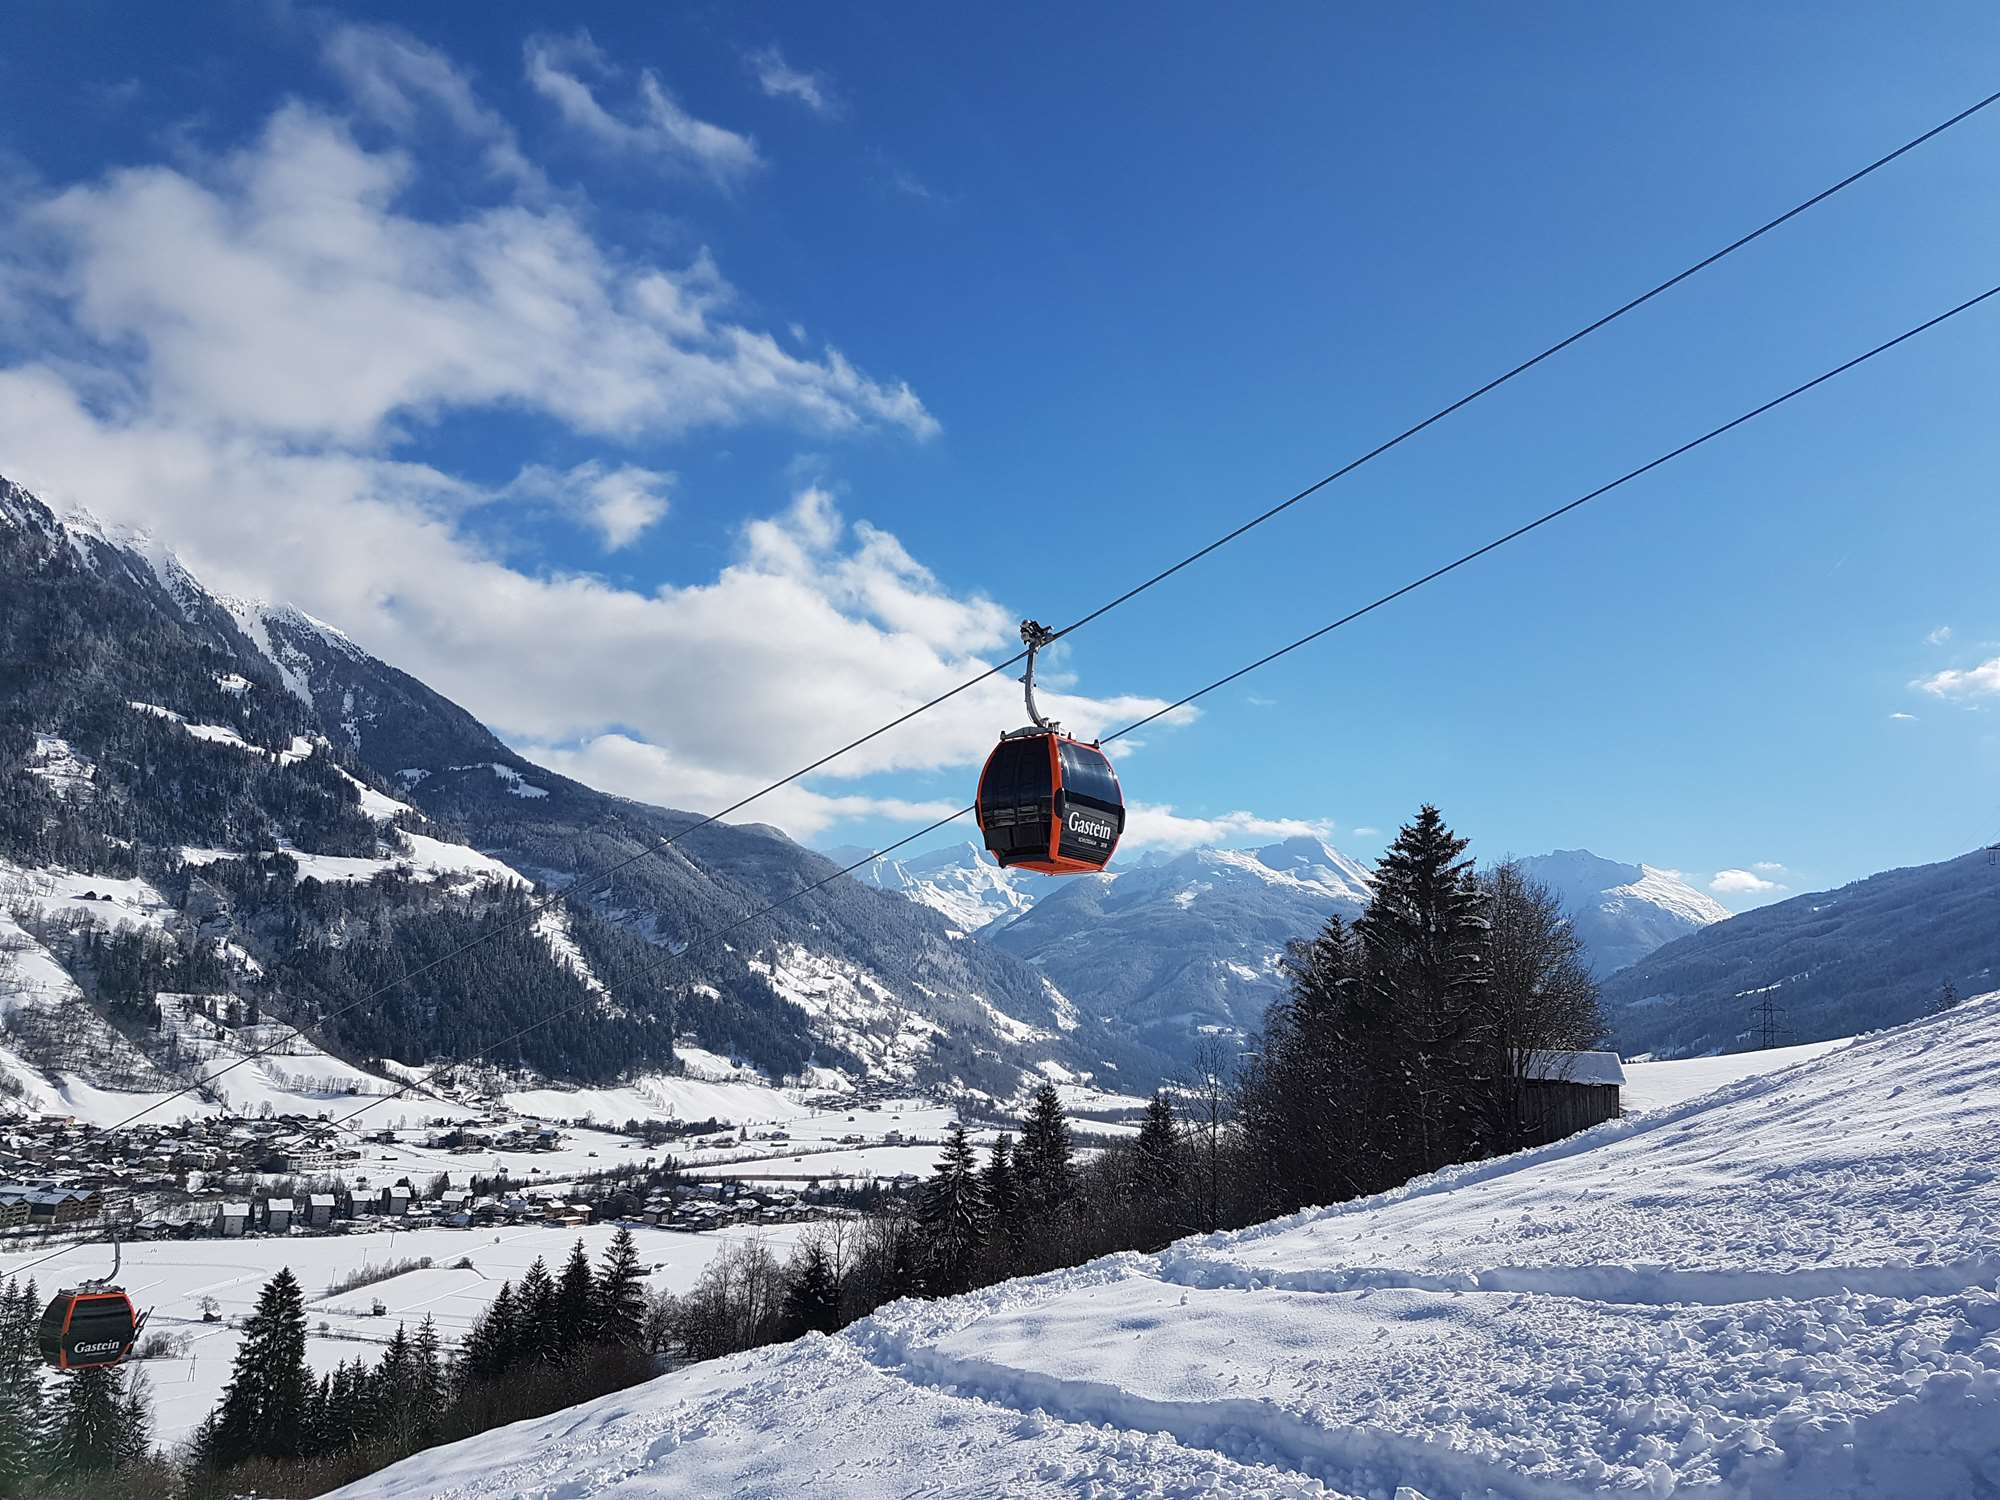 The new lift at Bad Hofgastein